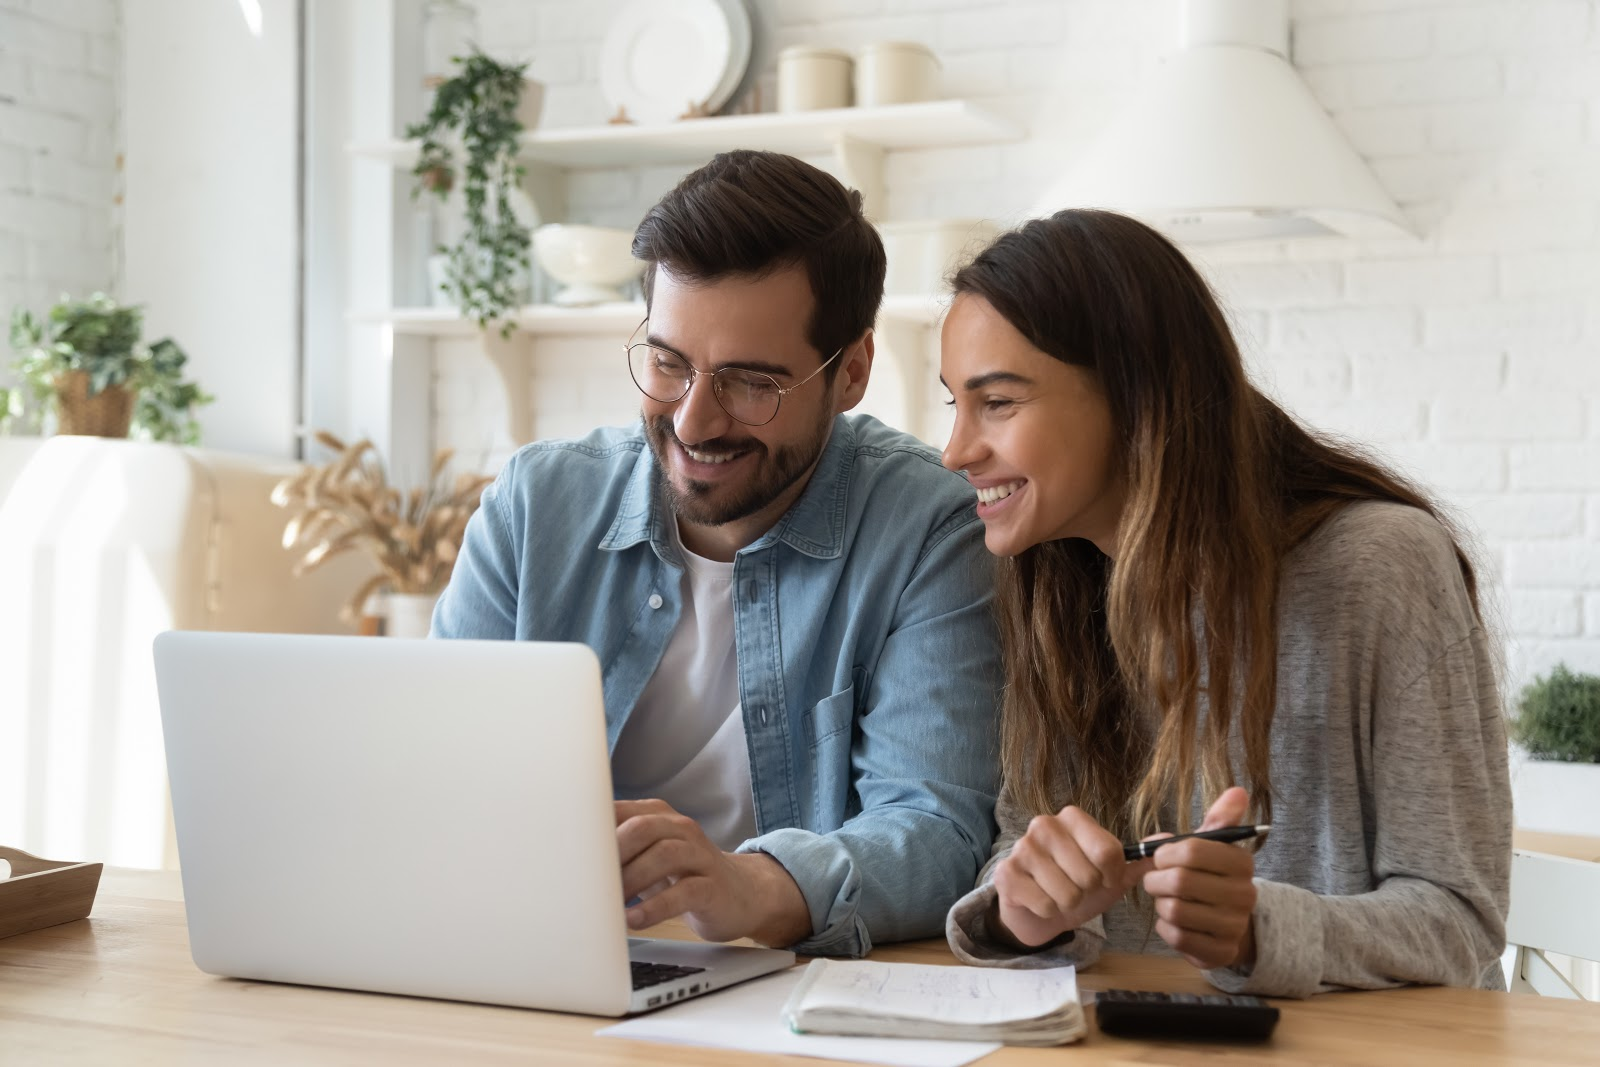 A smiling couple prepares taxes on a laptop